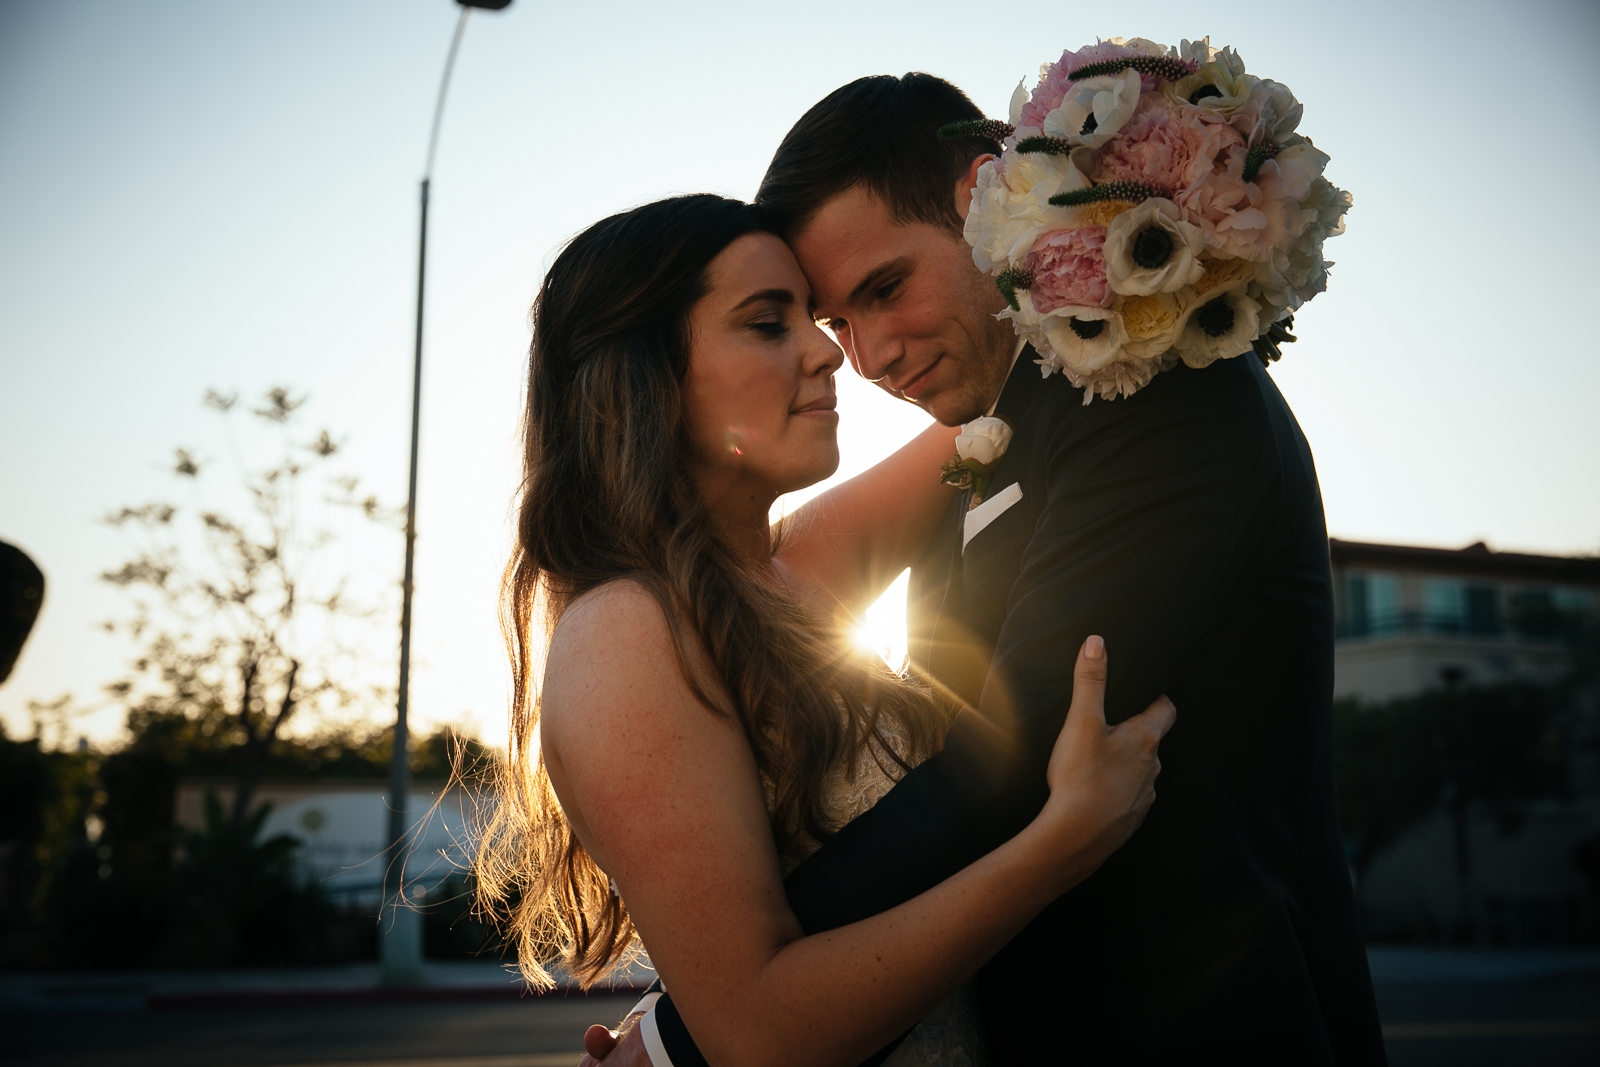 Amanda_&_Steve_Wedding_Darlington_House_La_Jolla_2015_IMG_7141.JPG